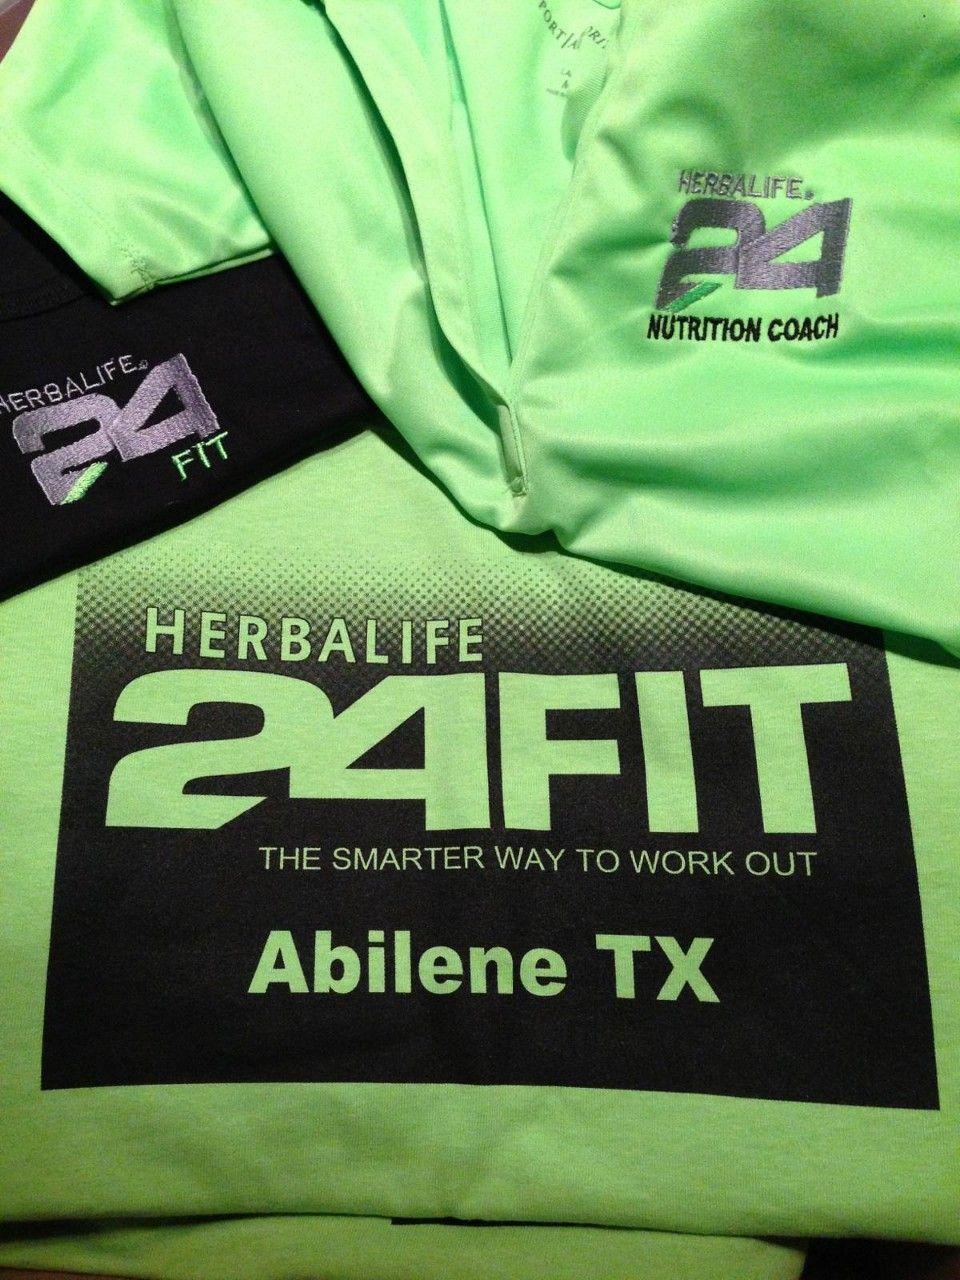 Herbalife 24 Fit Abilene Texas Herbalife Herbalife 24 Fit